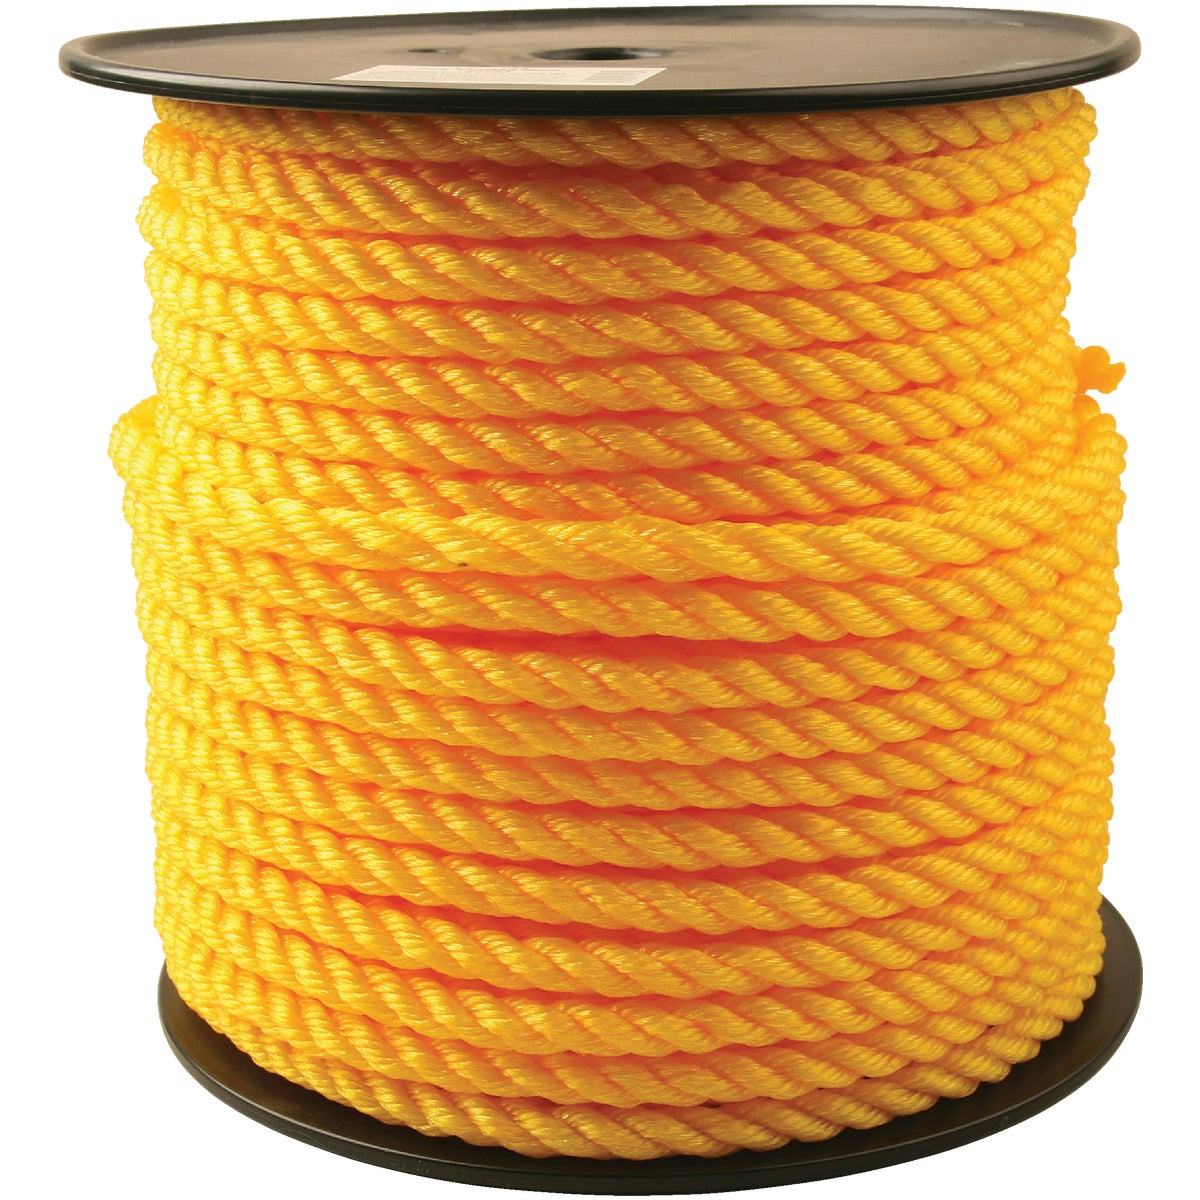 "1/2""X600' POLY TWST ROPE - 700227 by Do it Best"